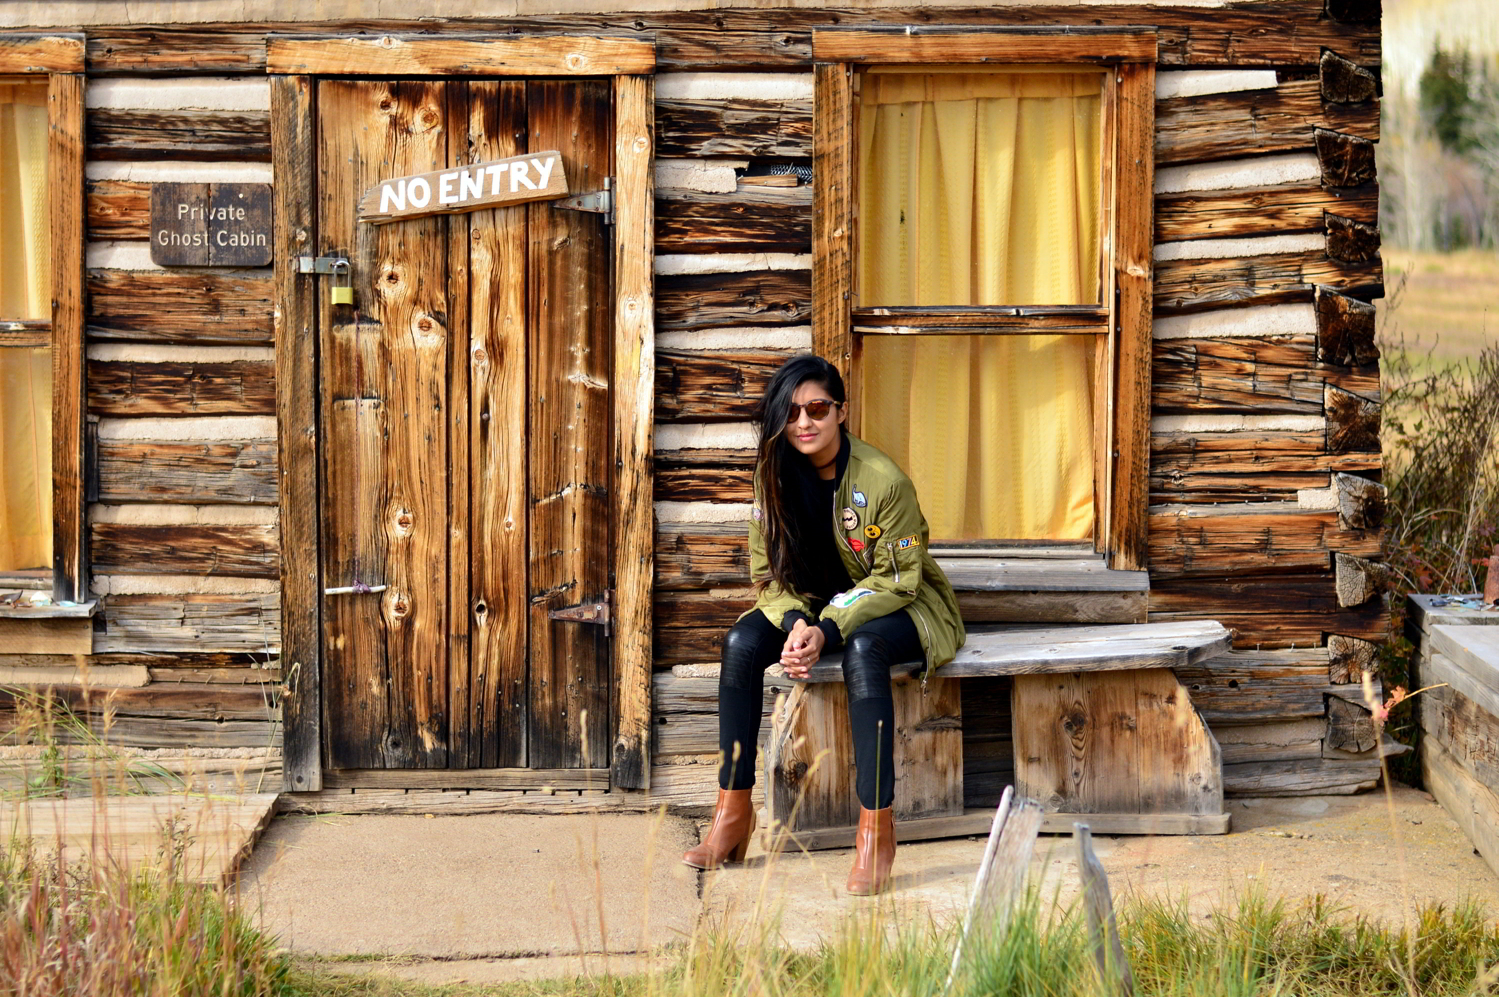 Patchwork-bomber-jacket-fall-fashion-blogger-outfit-colorado-ashford-ghost-town 1